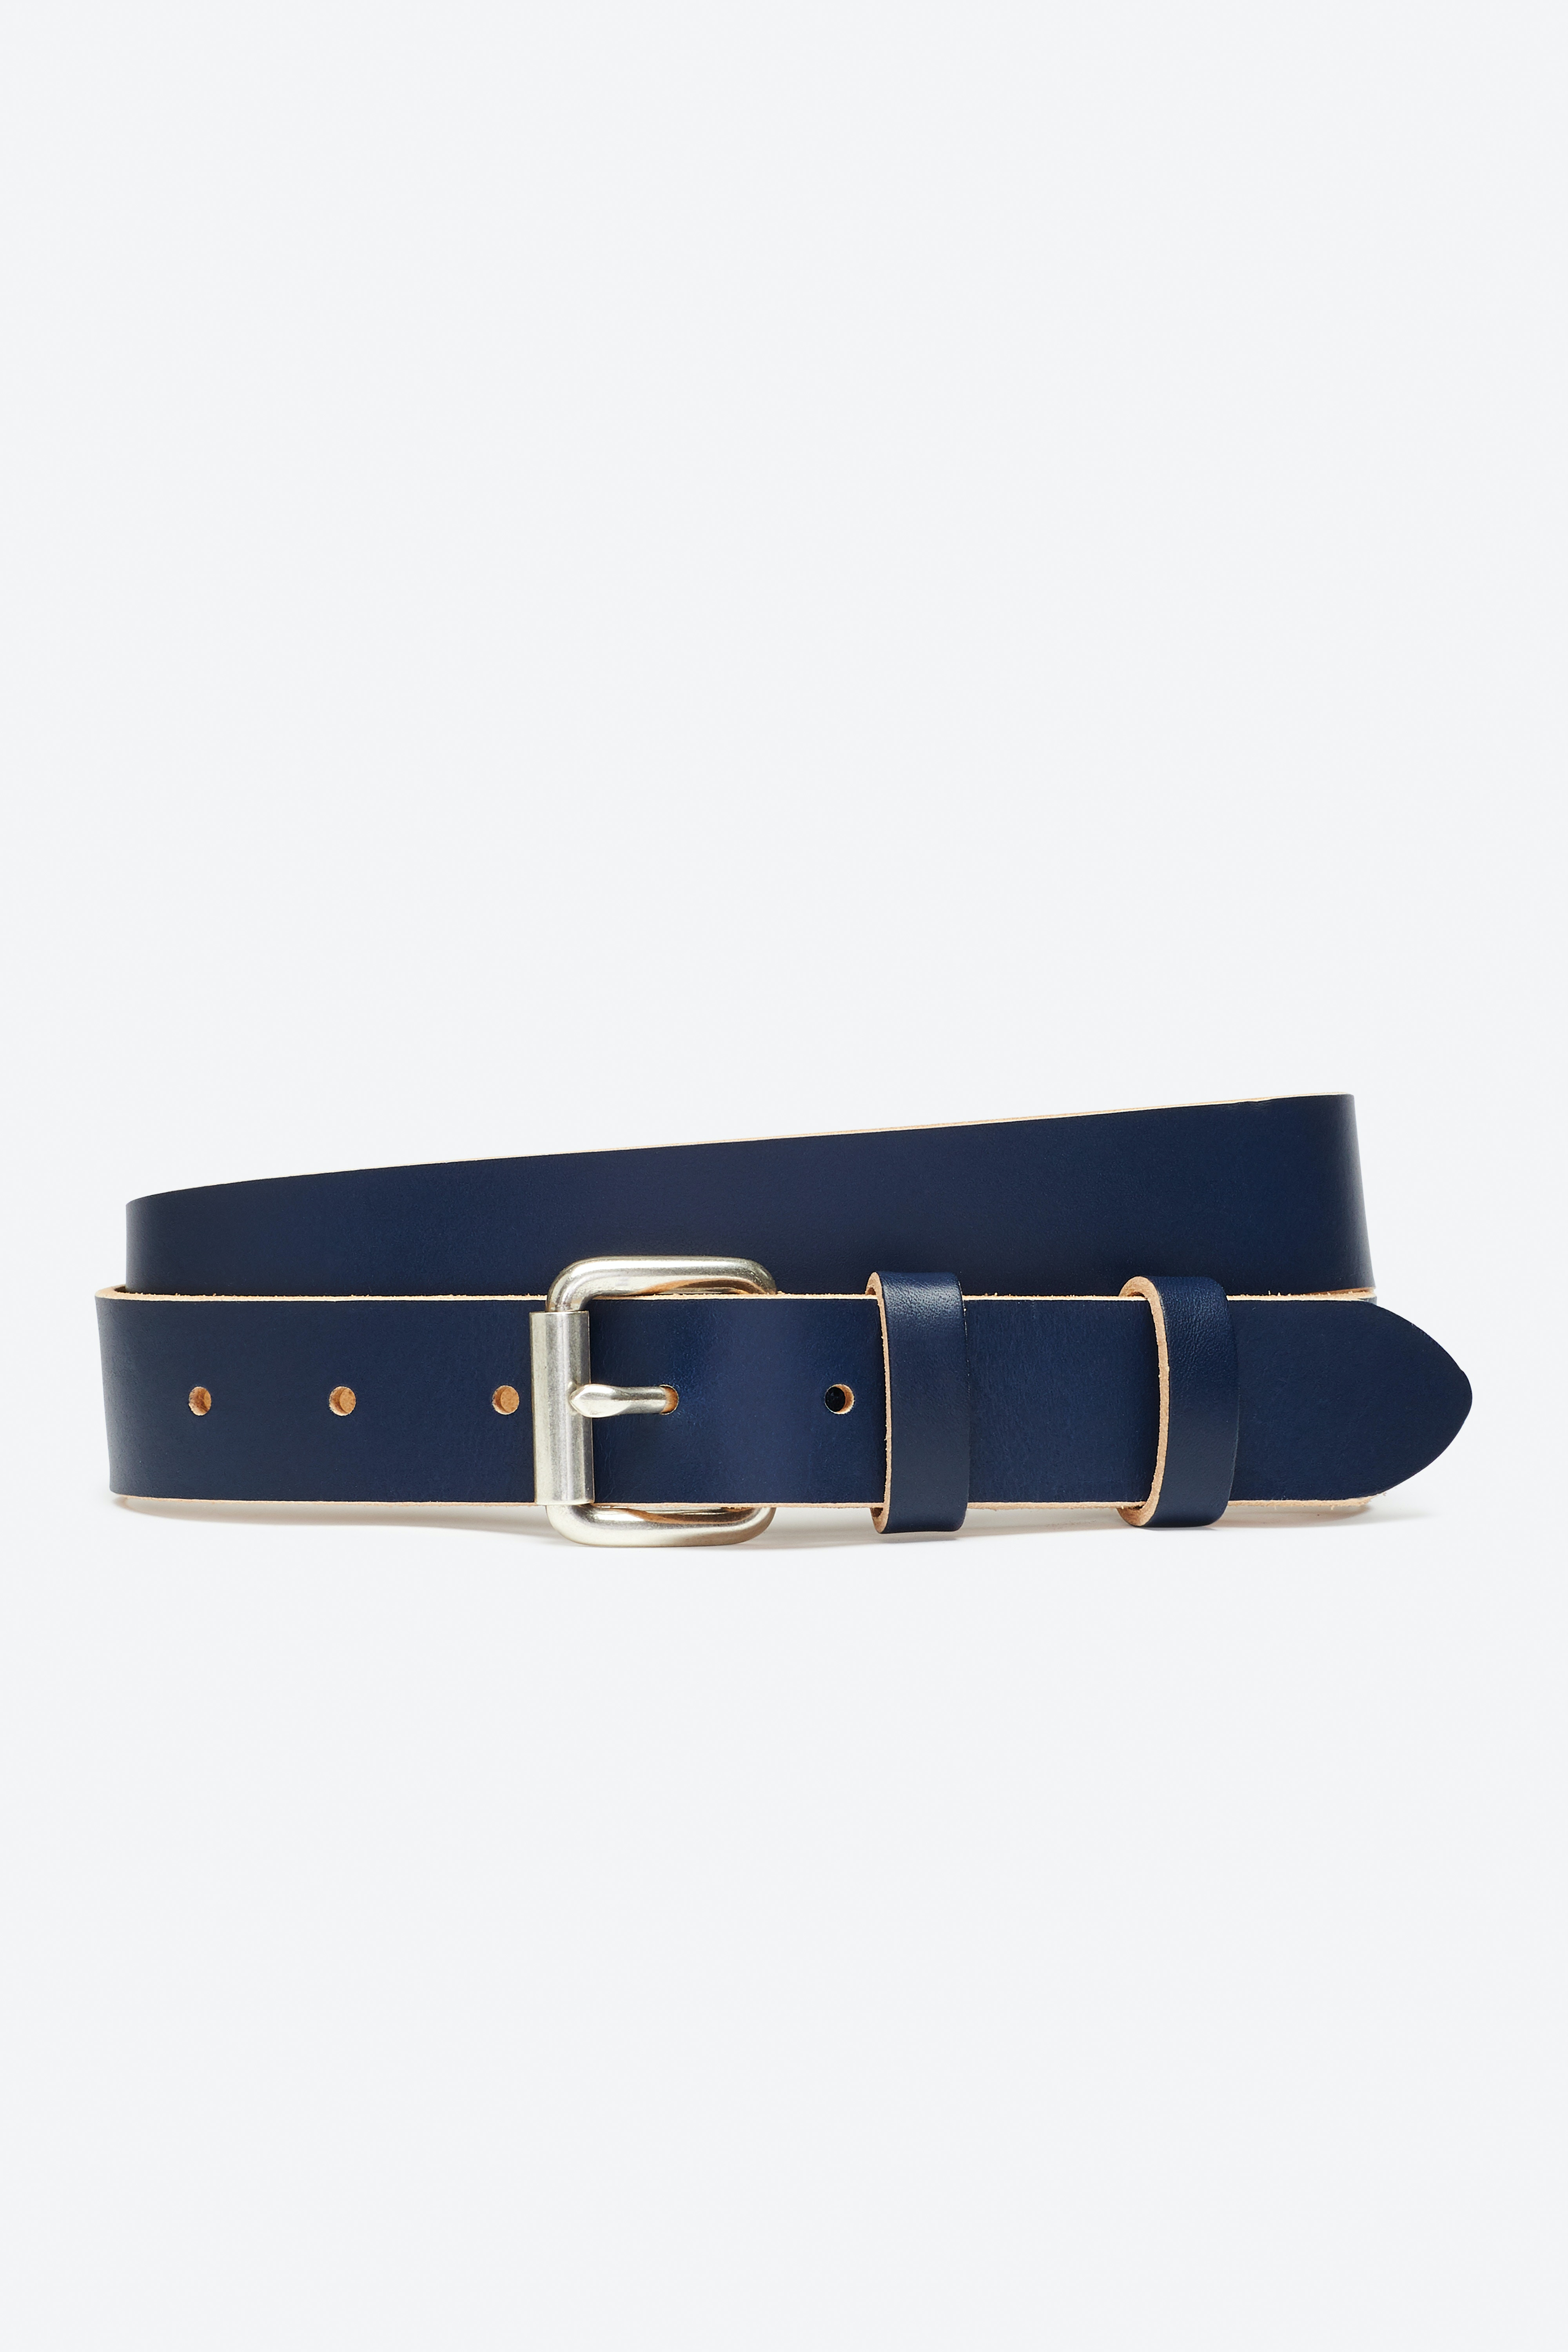 Top Dyed Jeans Belt